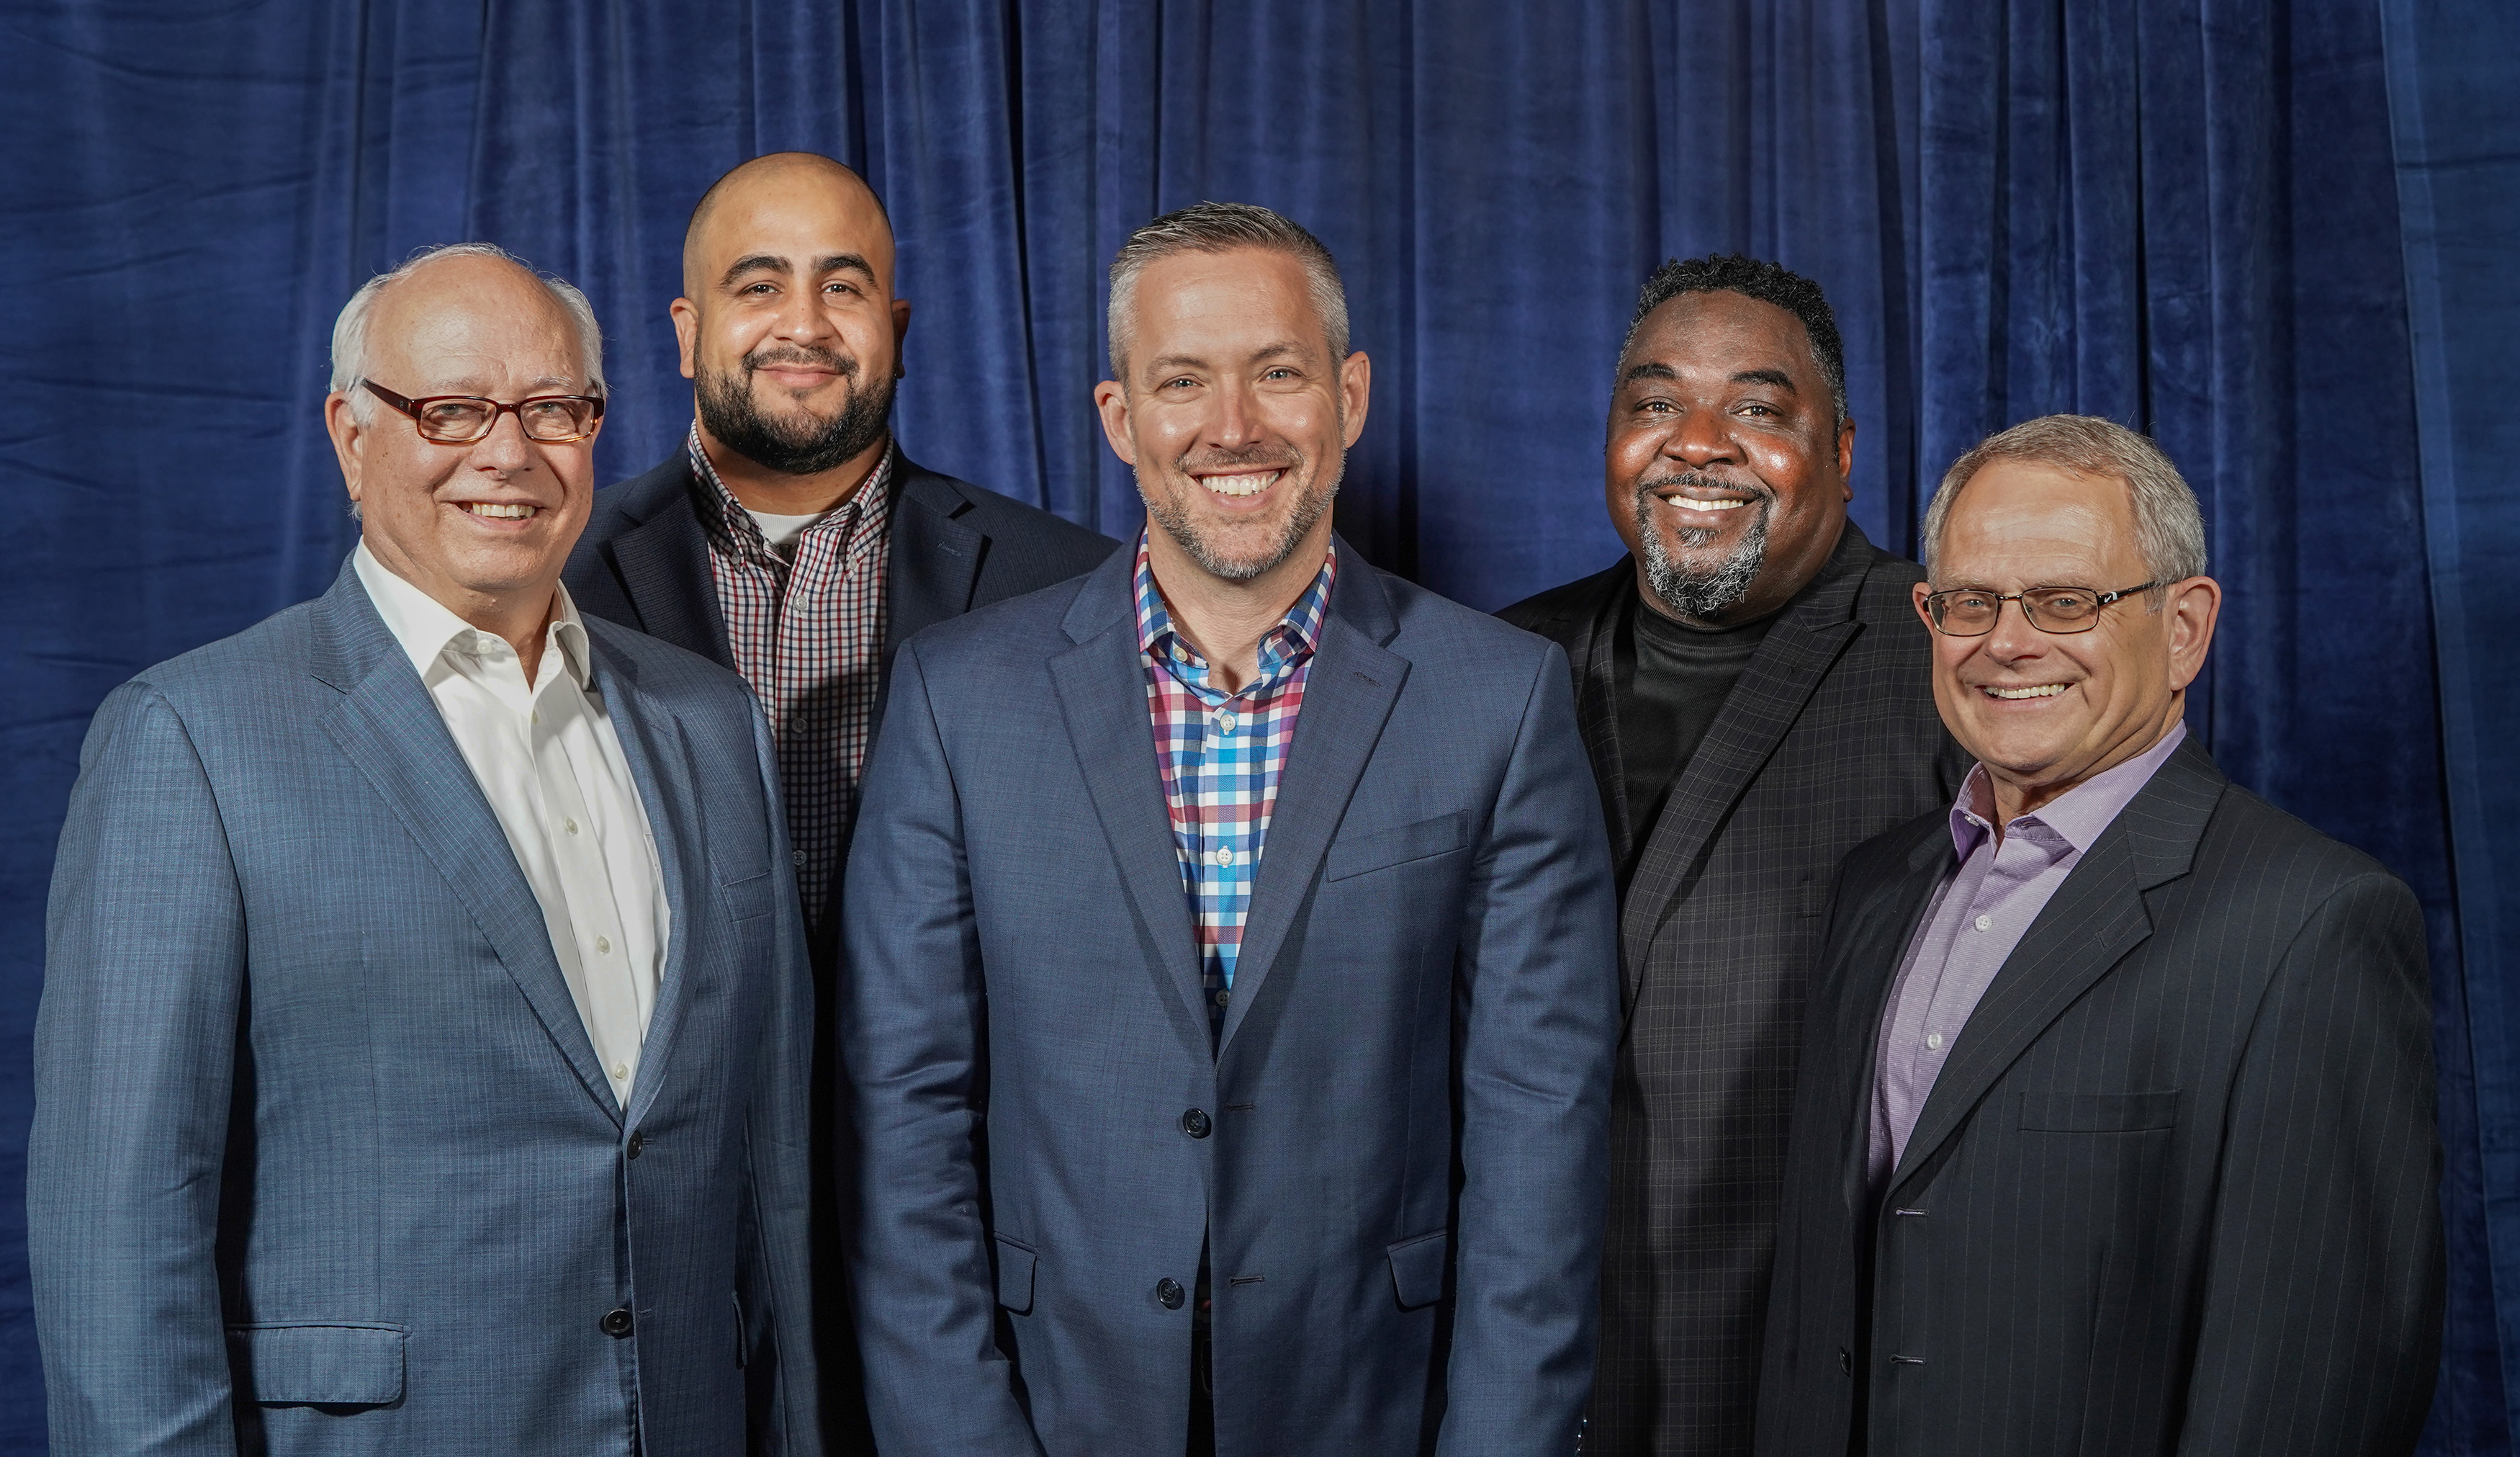 Diverse Slate of Officers to Lead Southern Baptist Convention in